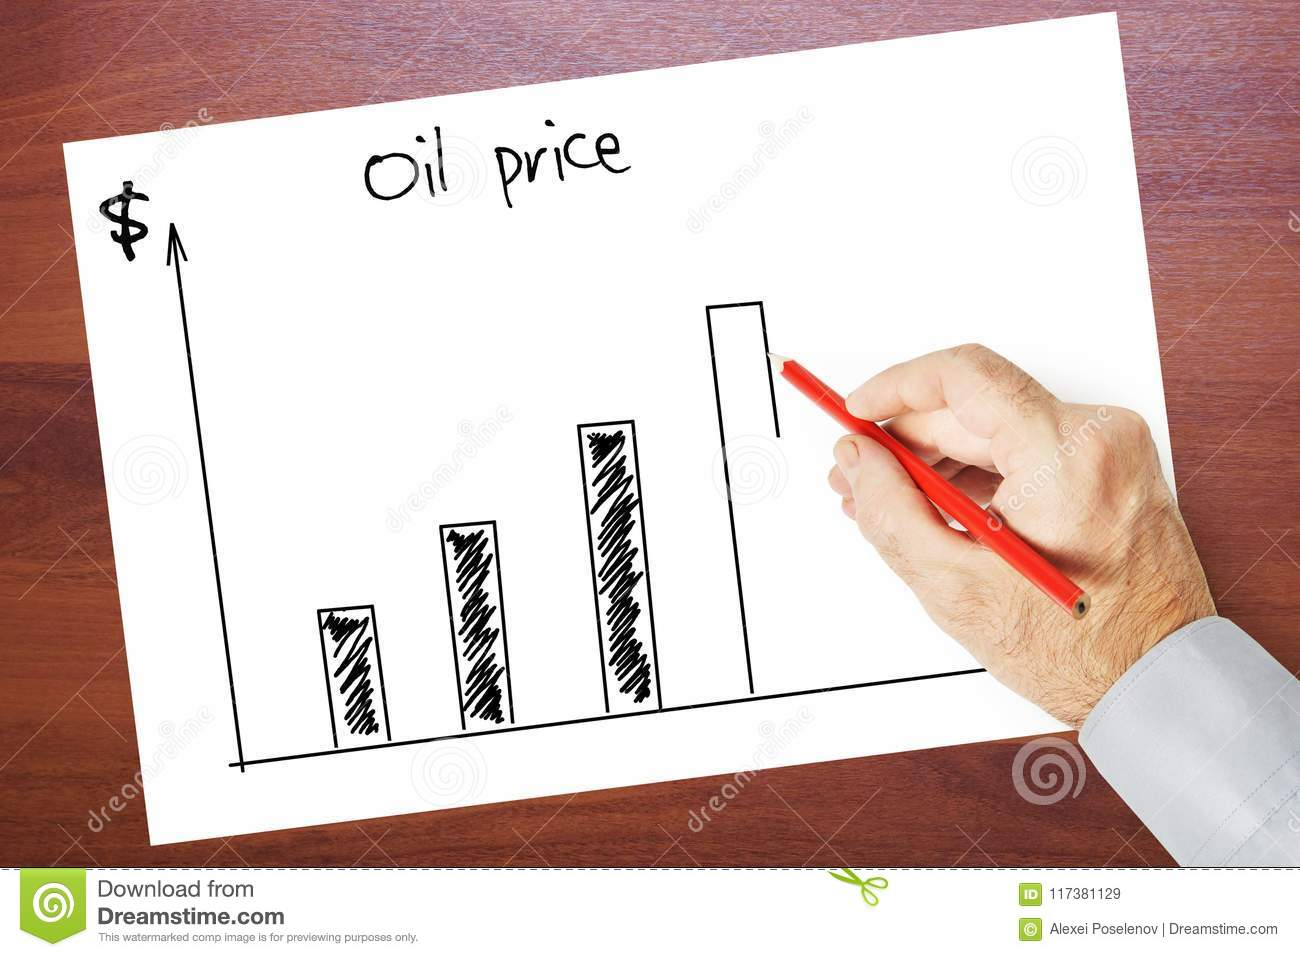 Graph of rising oil prices